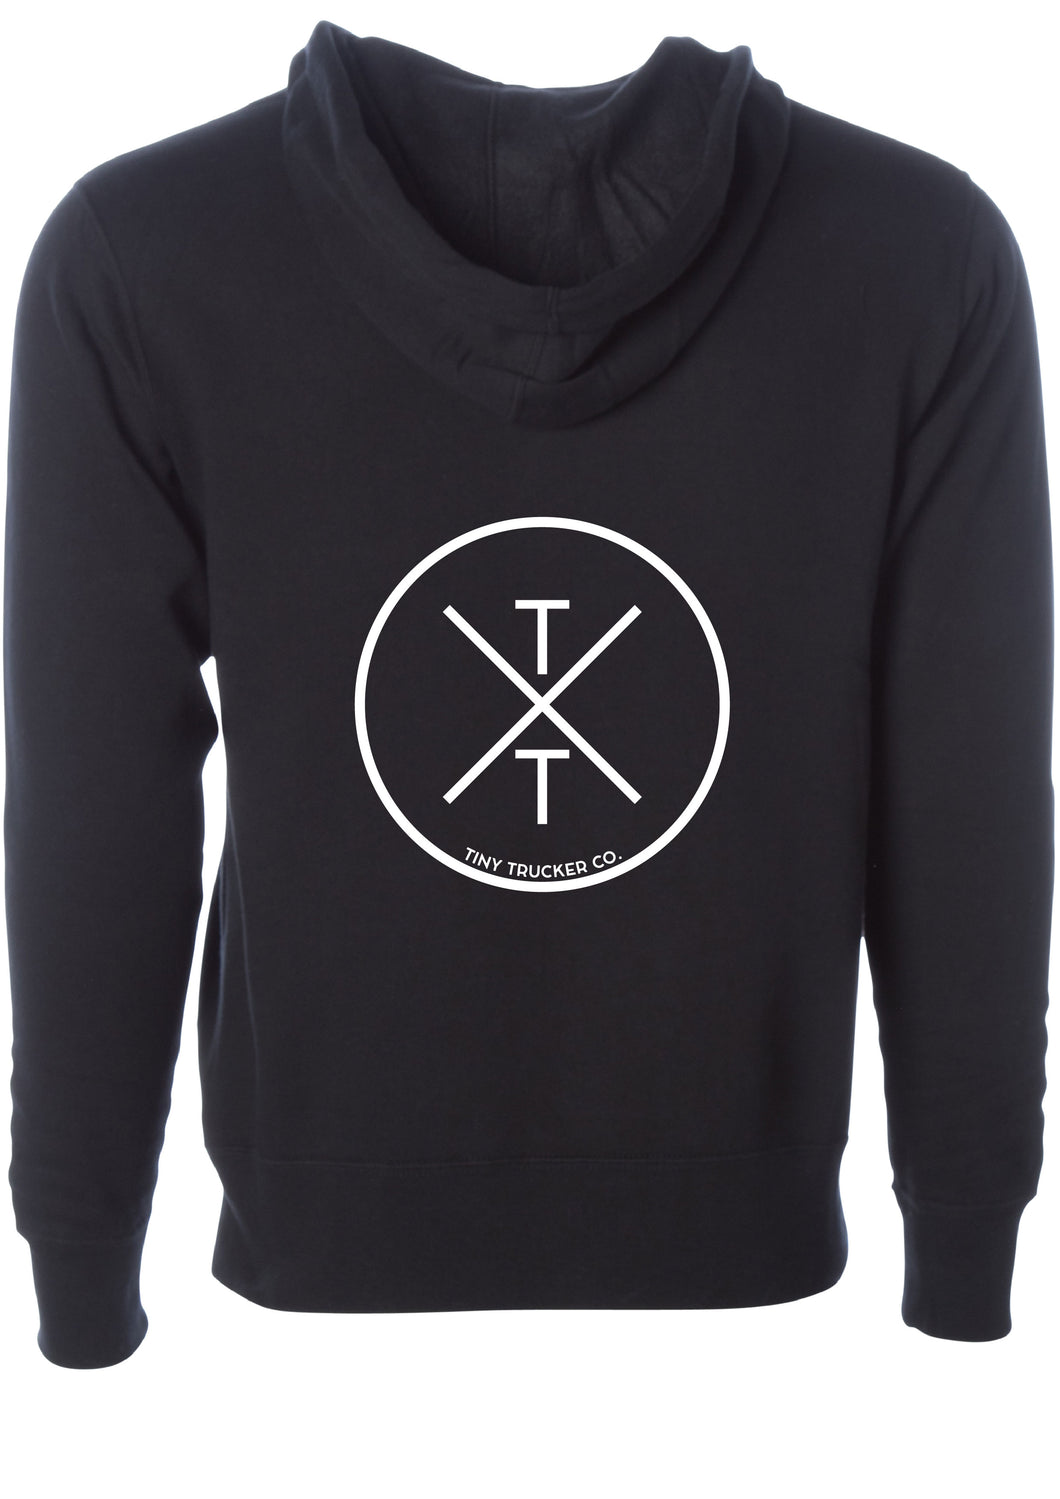 TXT ™ ZIP UP SWEATSHIRT - BLACK